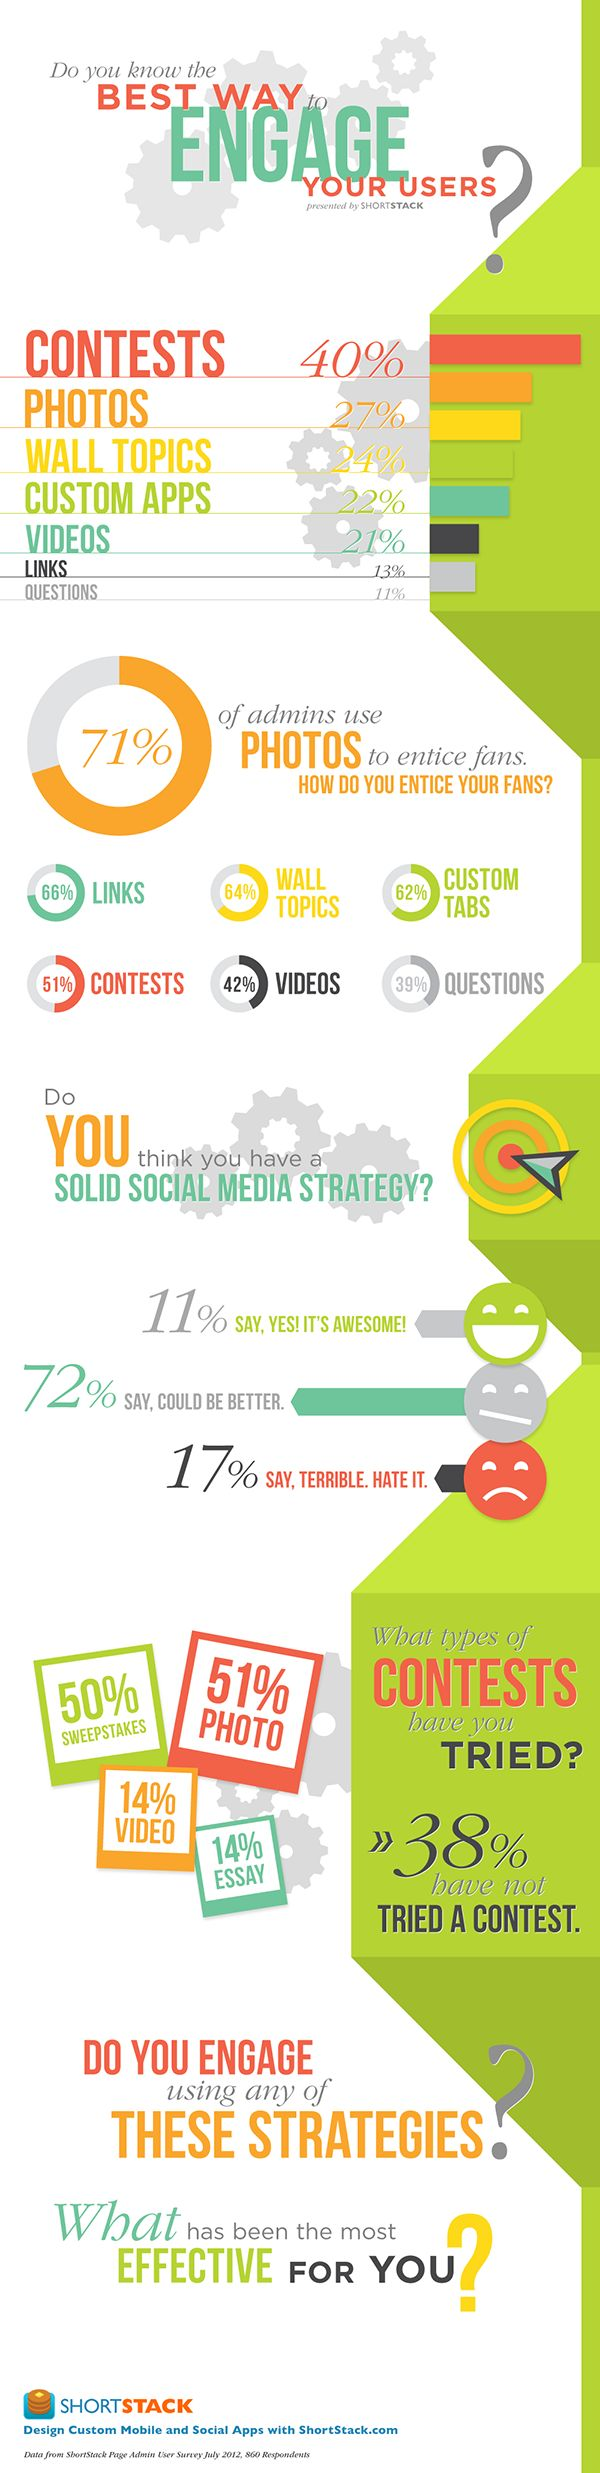 What Are The Best Ways To Engage Social Media Users? - #Infographic